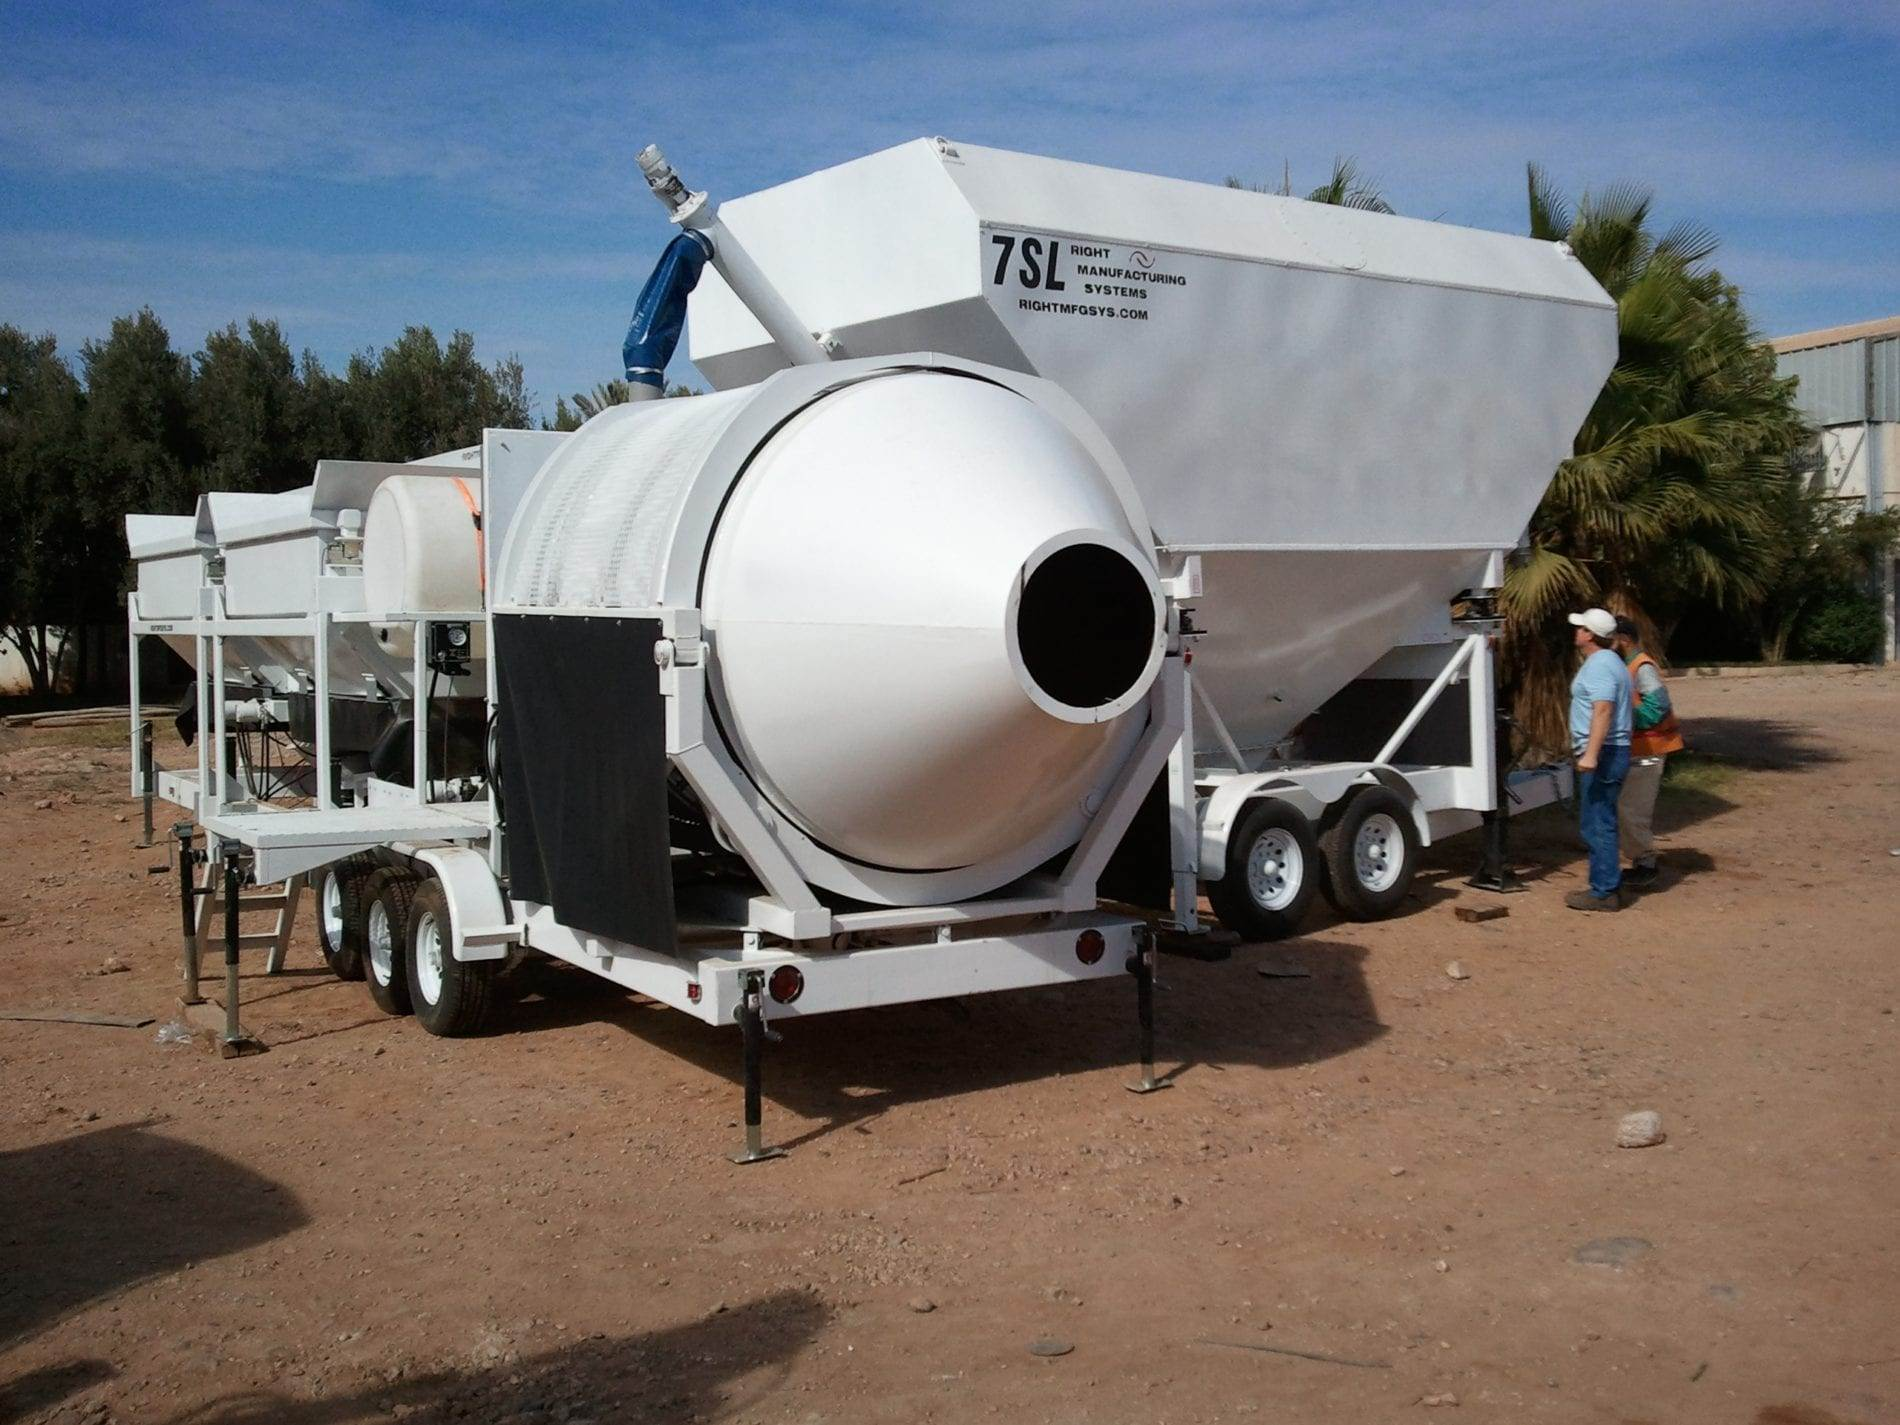 Portable Concrete Mixer Batching Plant 8+ Cubic Yards Automated Mix Right EZ 2-8-4 & Portable Cement Silo 35 Ton 7SL-80 in Morocco by Right Manufacturing Systems Inc.